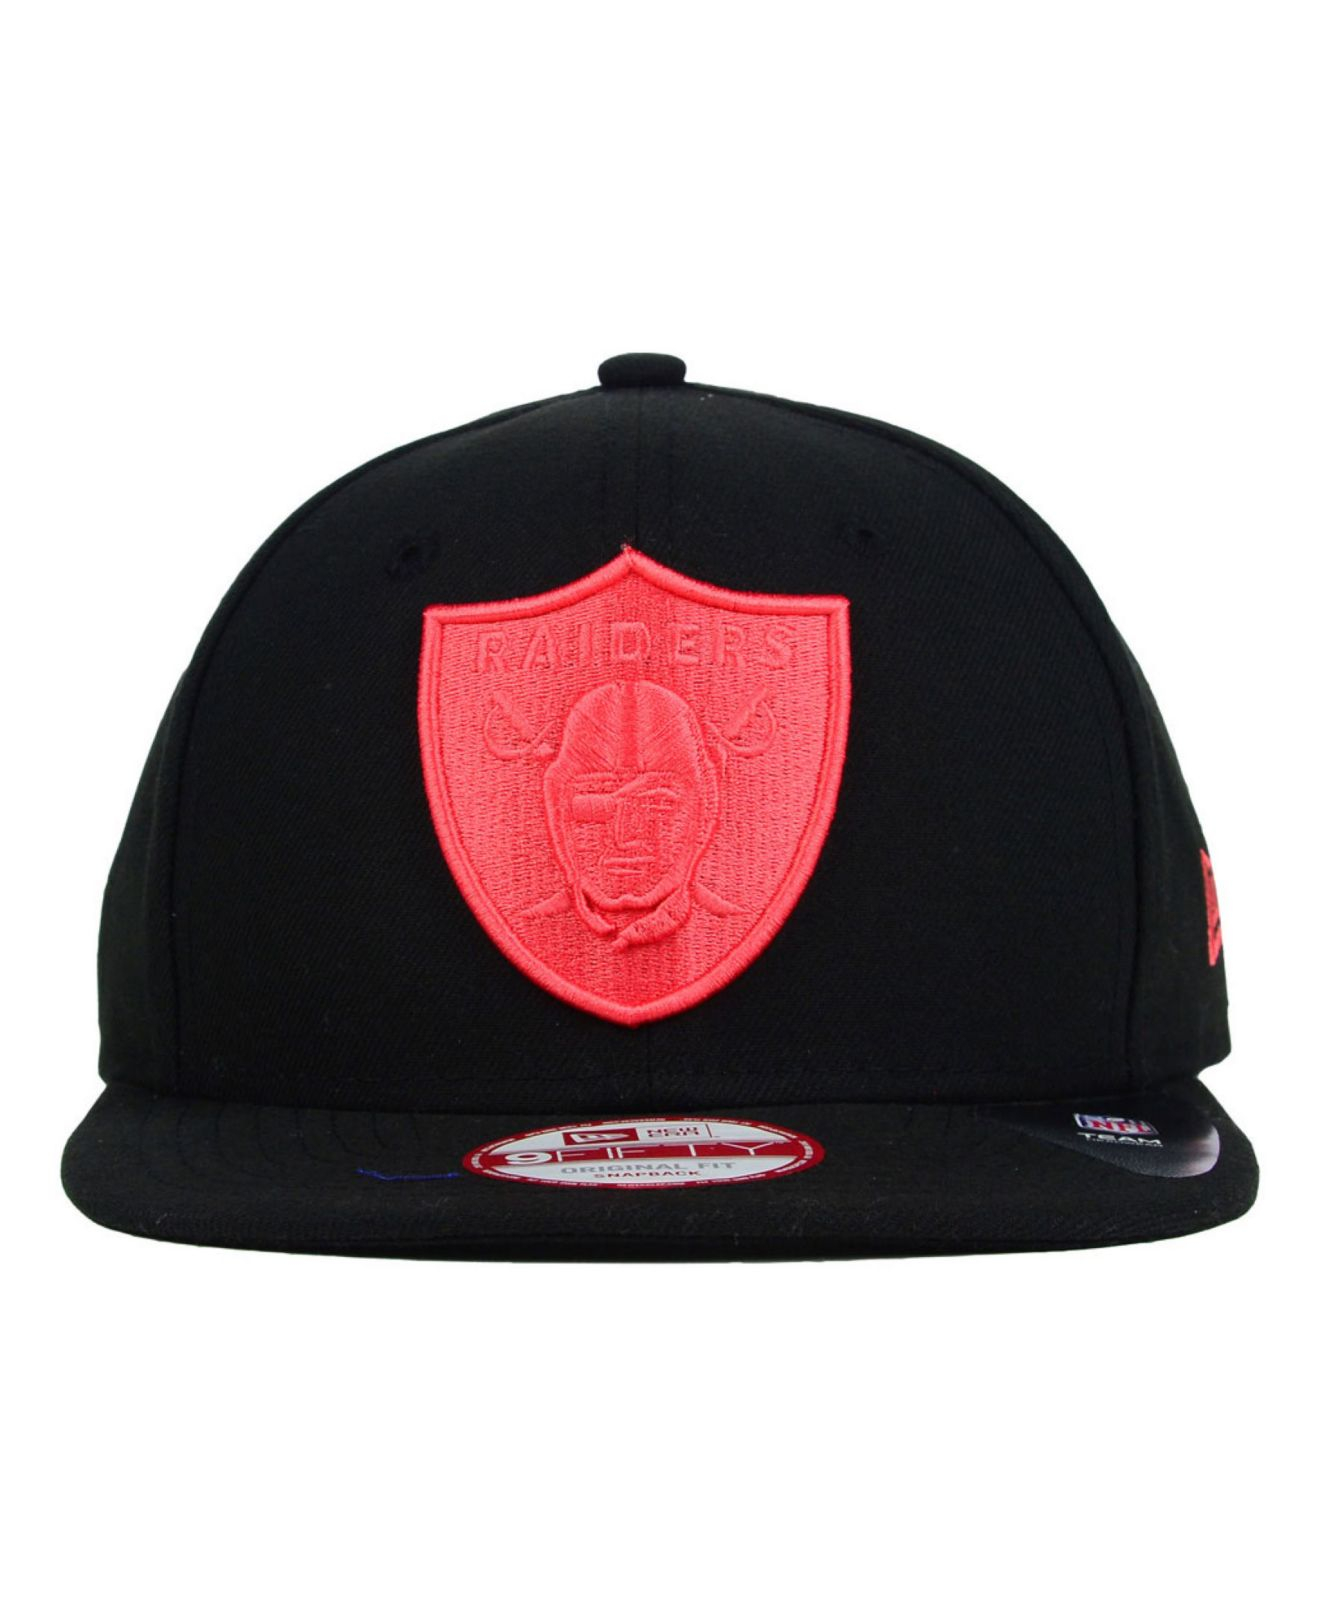 9d540534 spain all red oakland raiders hat 293e4 f2c85